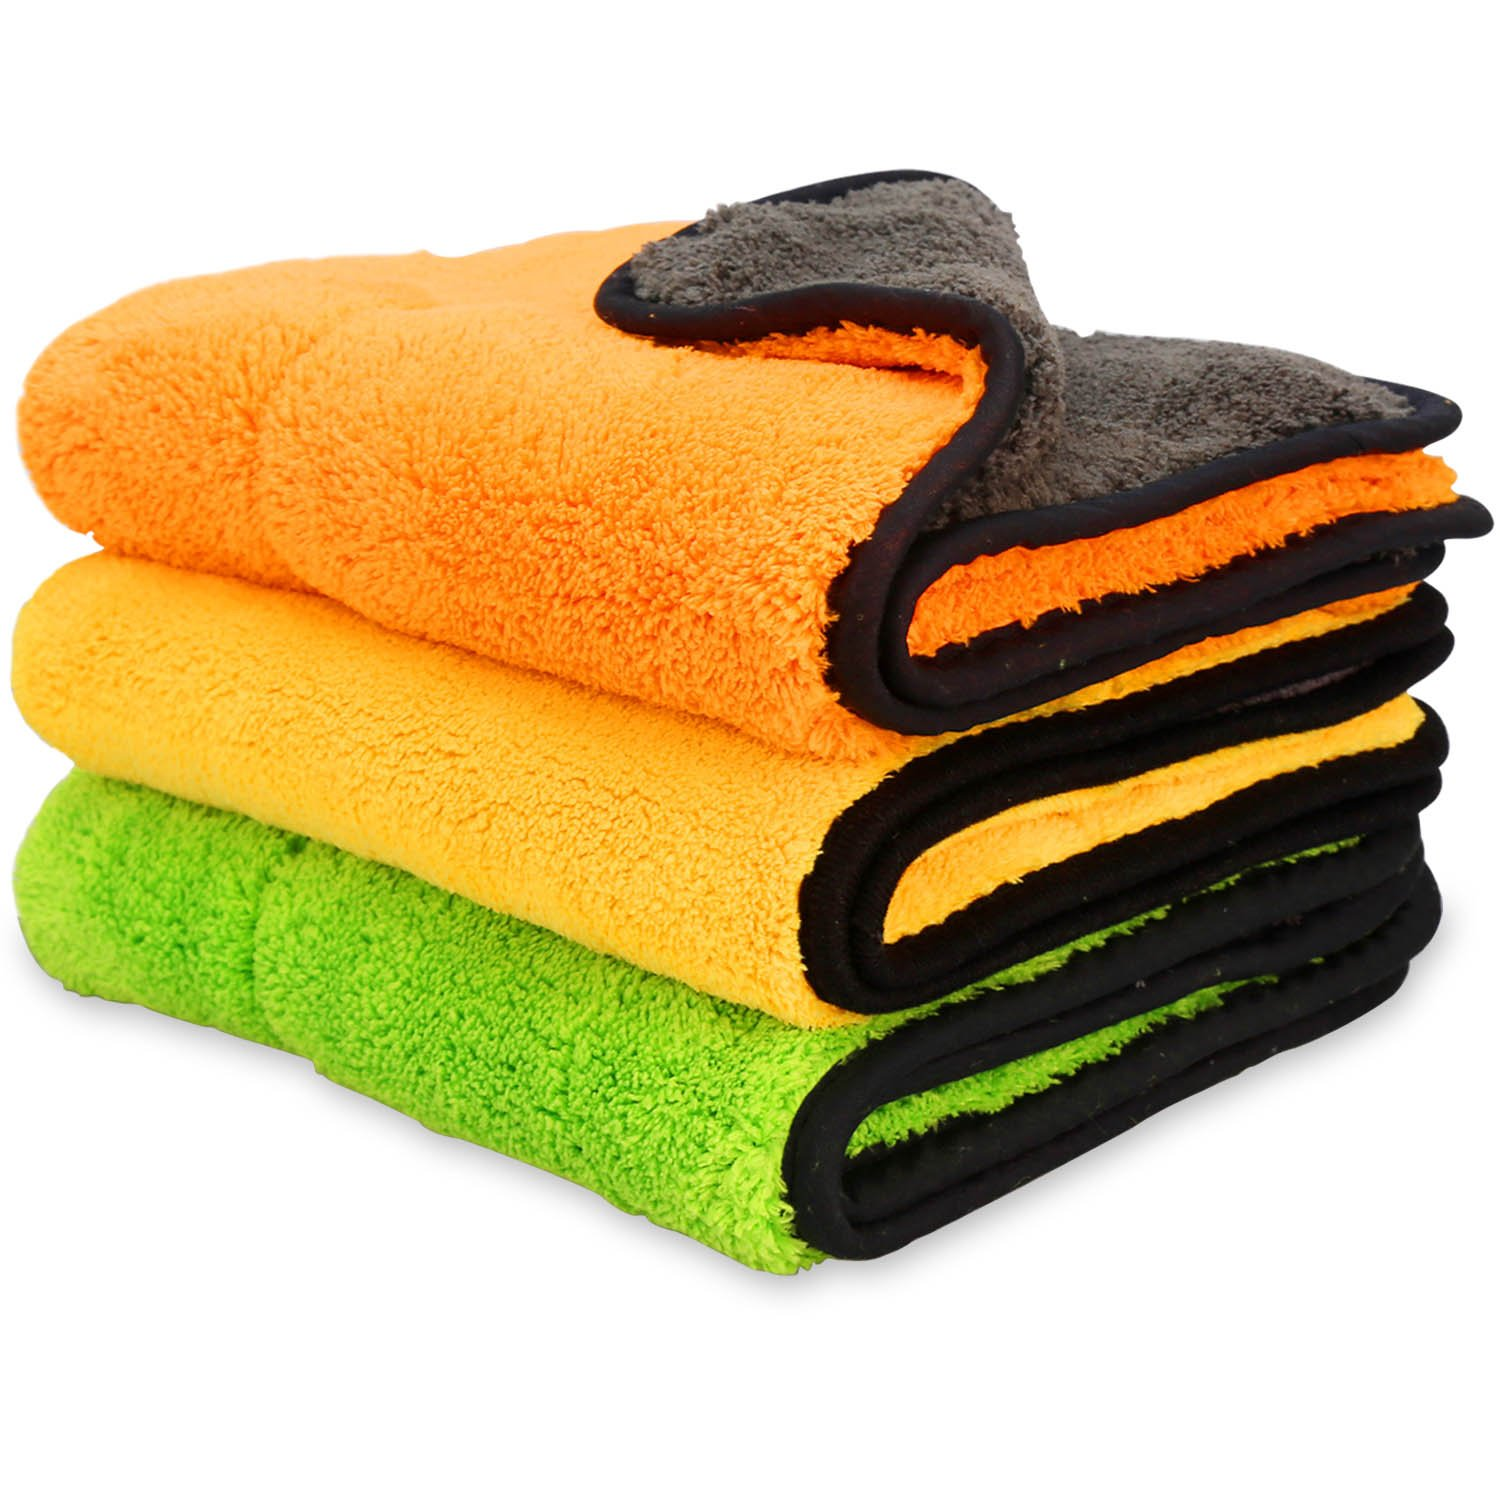 iTavah Car Microfiber Cleaning Cloths Lint Free Dual Layer Drying Auto Detailing Towel for Car & Motorcycle 840gsm(Pack of 3) ND001500